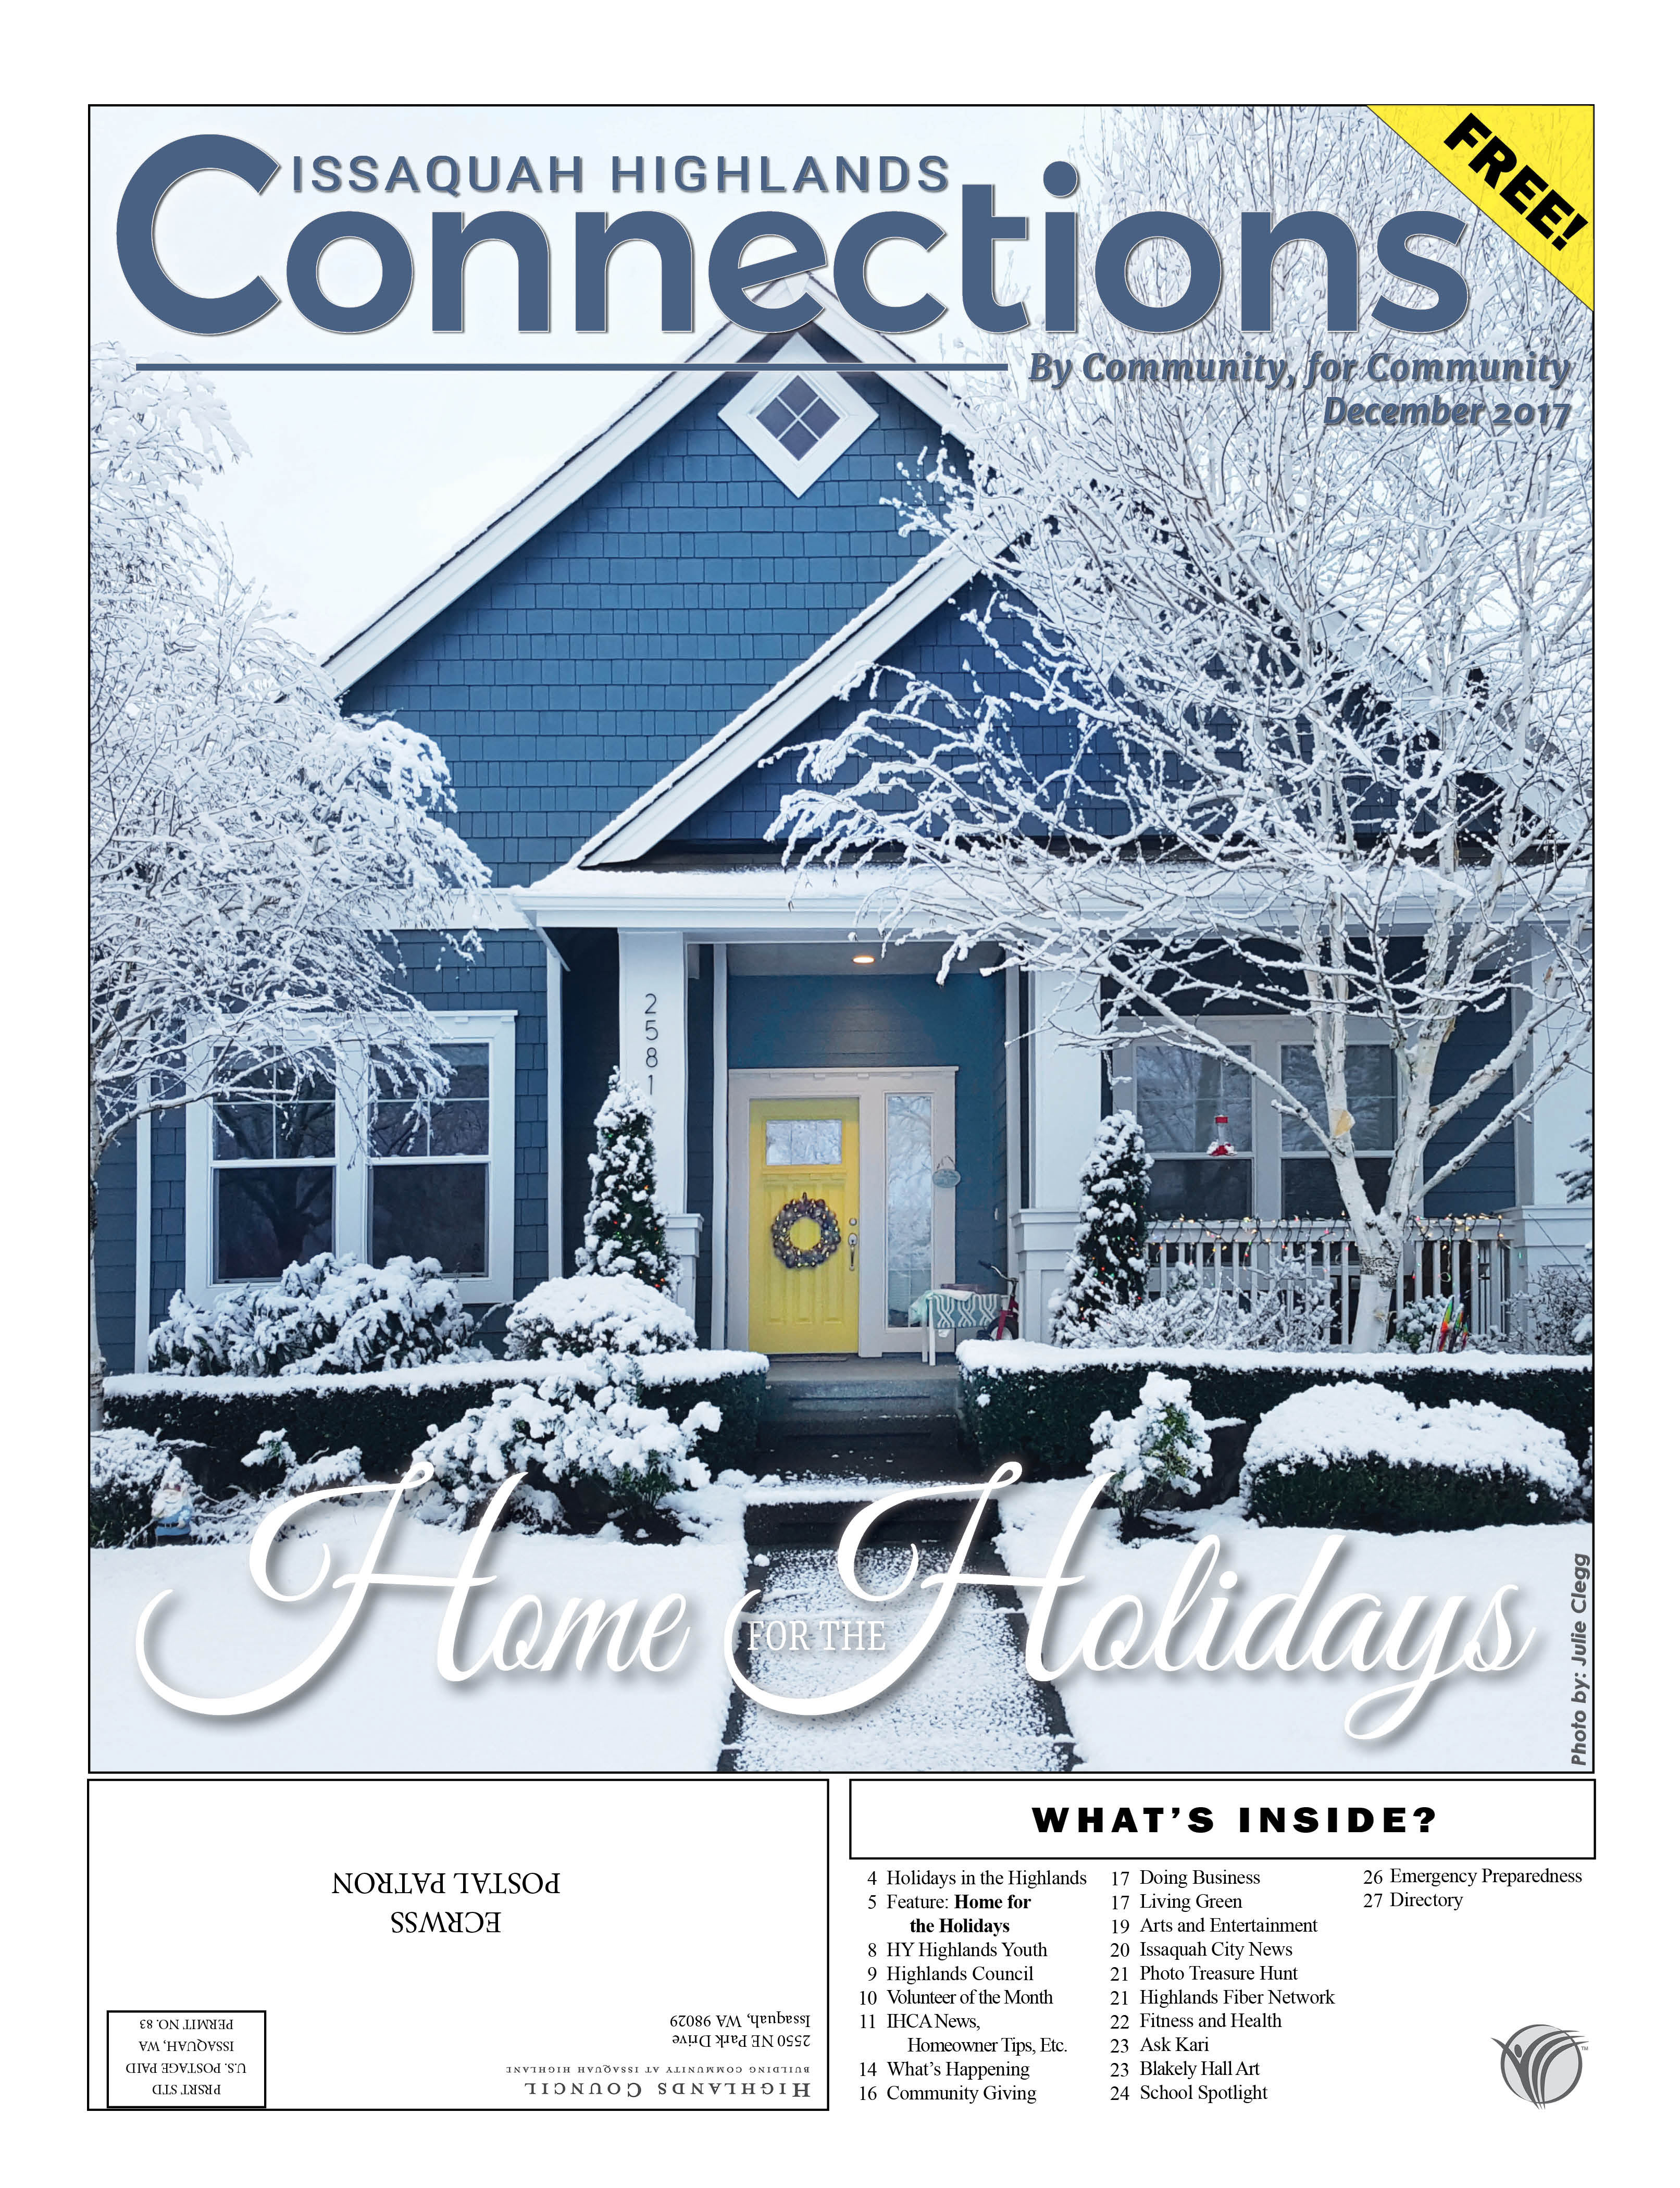 December 2017 Connections Home for the Holidays